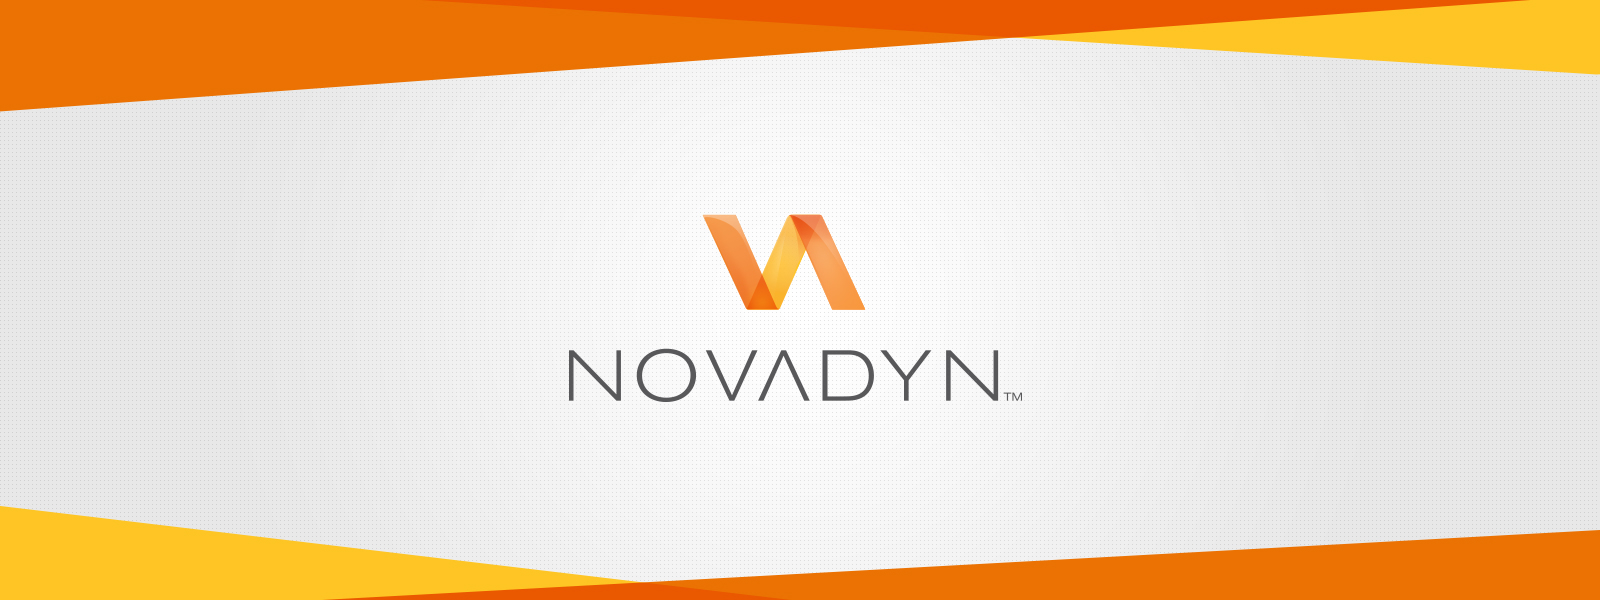 INVISTA Launches New Novadyn™ Transparent Polyamides